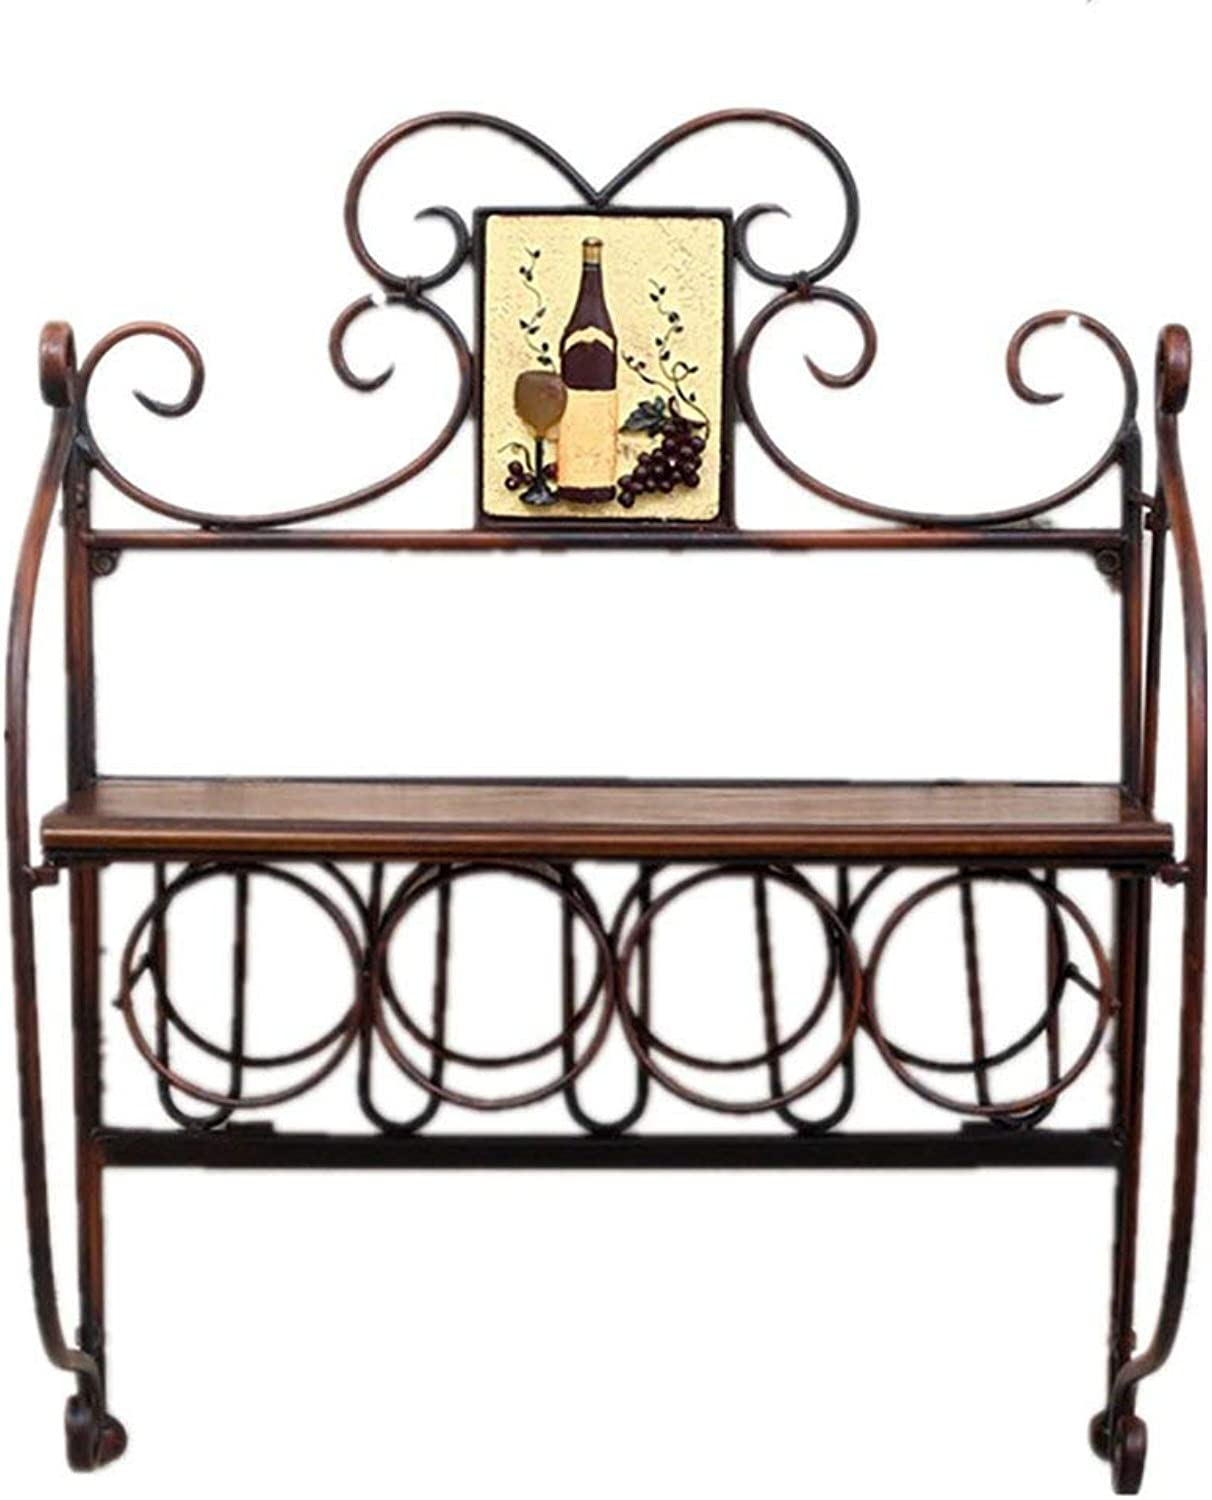 Wine Bottle Rack, Wall Hanging Wrought Iron Bar Wine Display Rack Living Room Dining Room Wall Decoration Frame Size 49x22x65cm